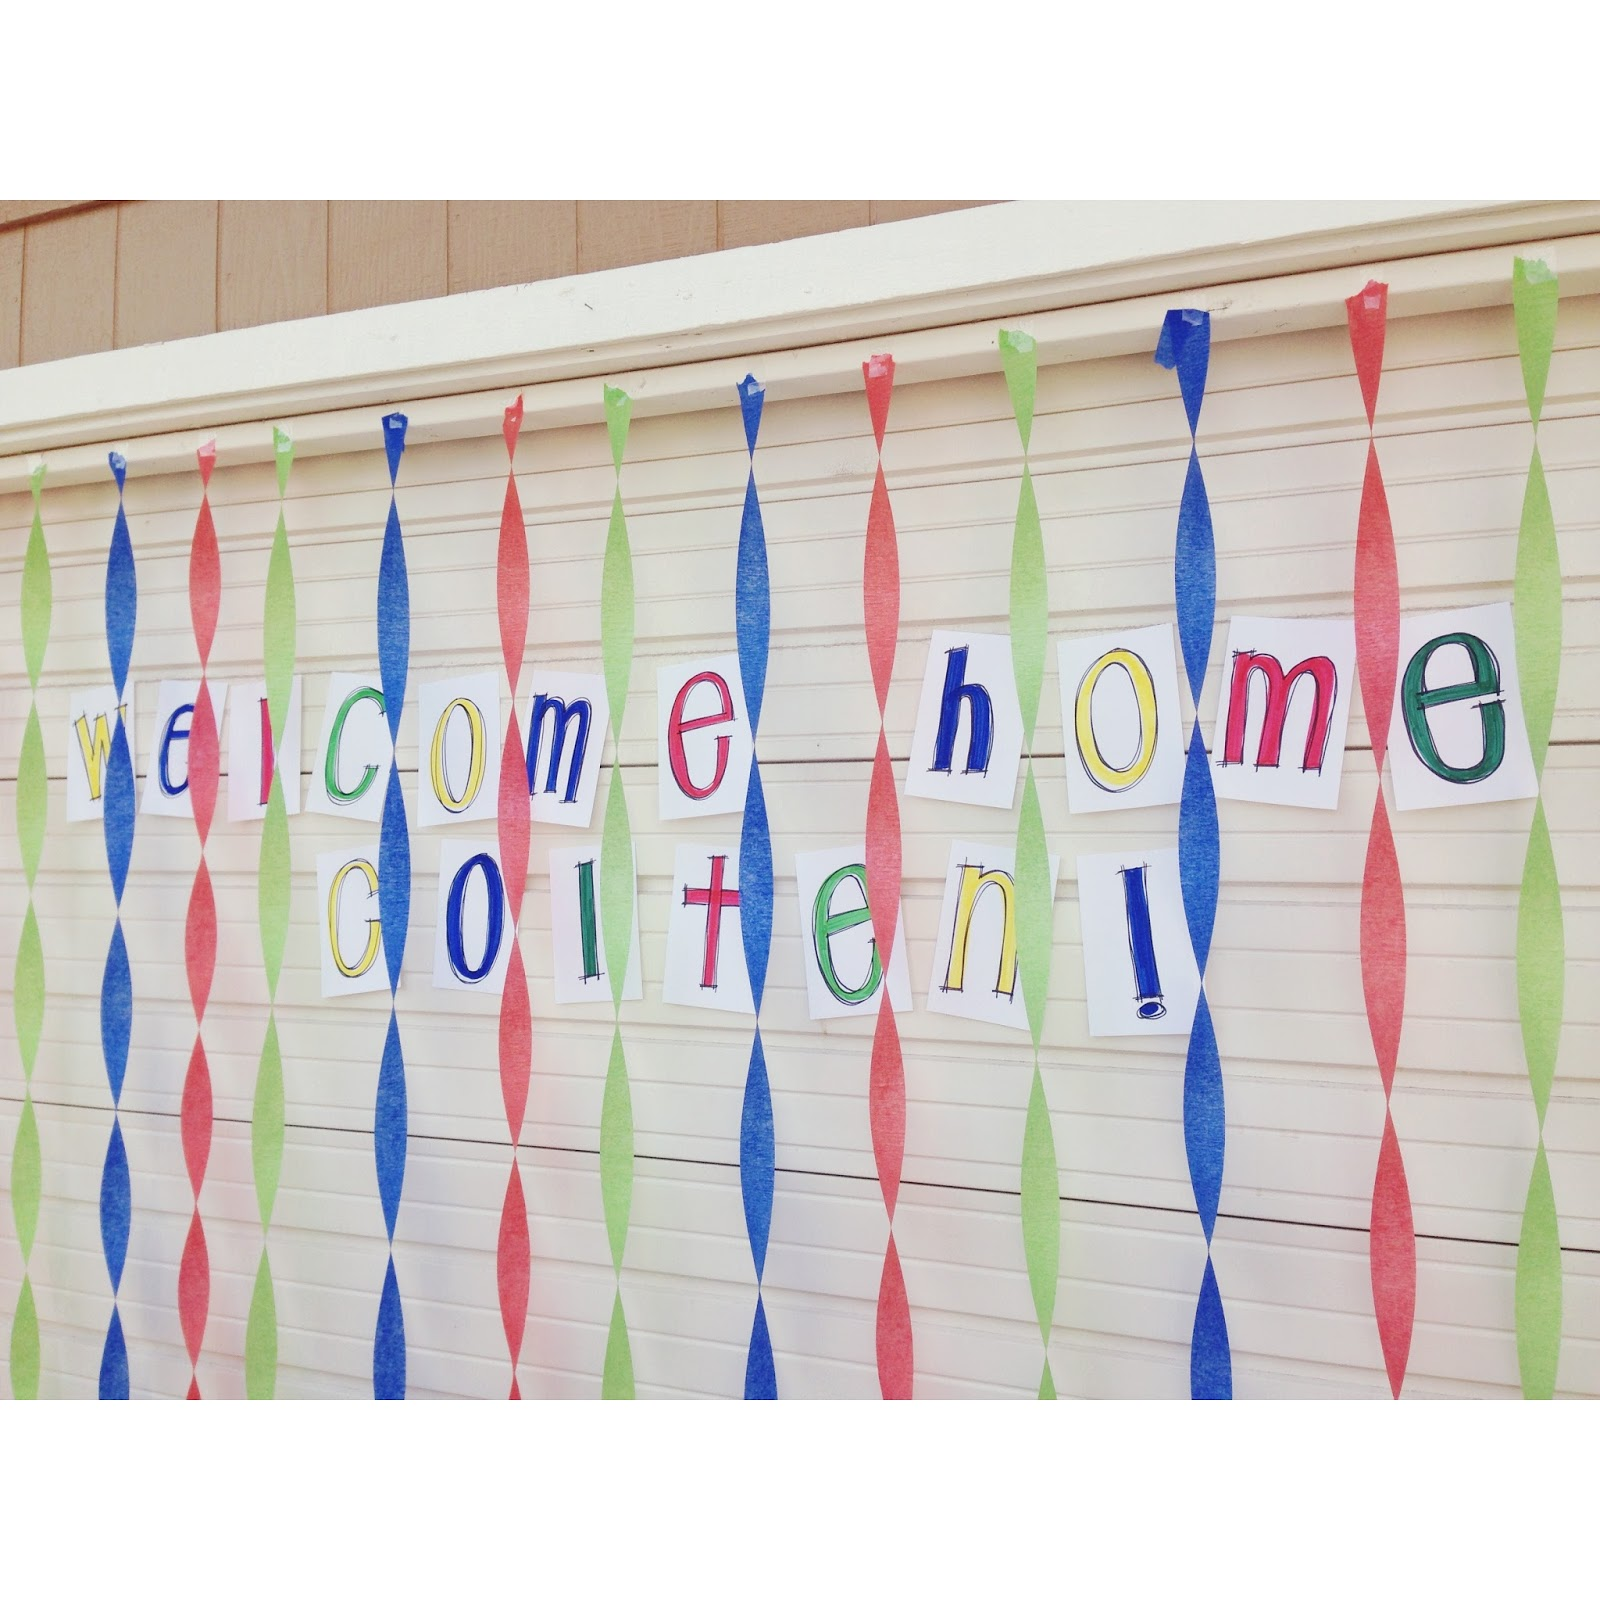 Welcome Home Door Decorations | Decoration For Home